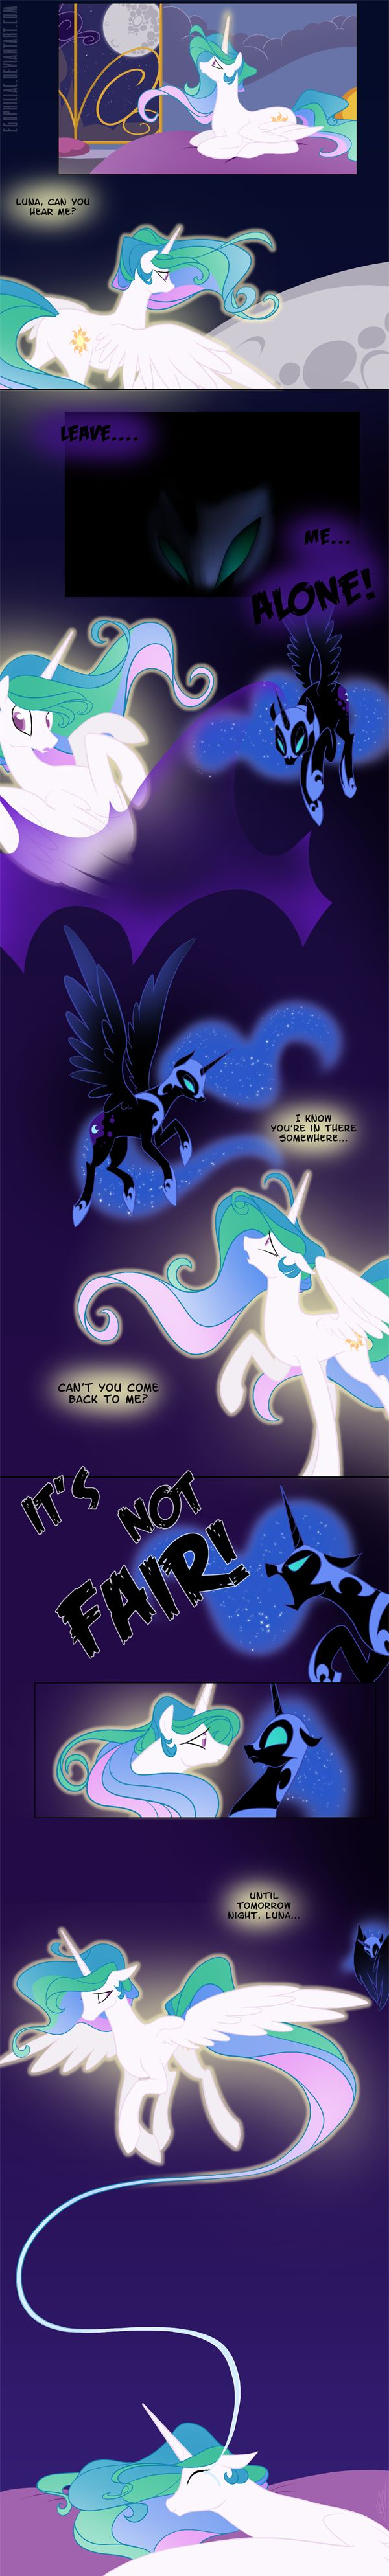 Every Night by Egophiliac on Deviantart - Celestia and Luna